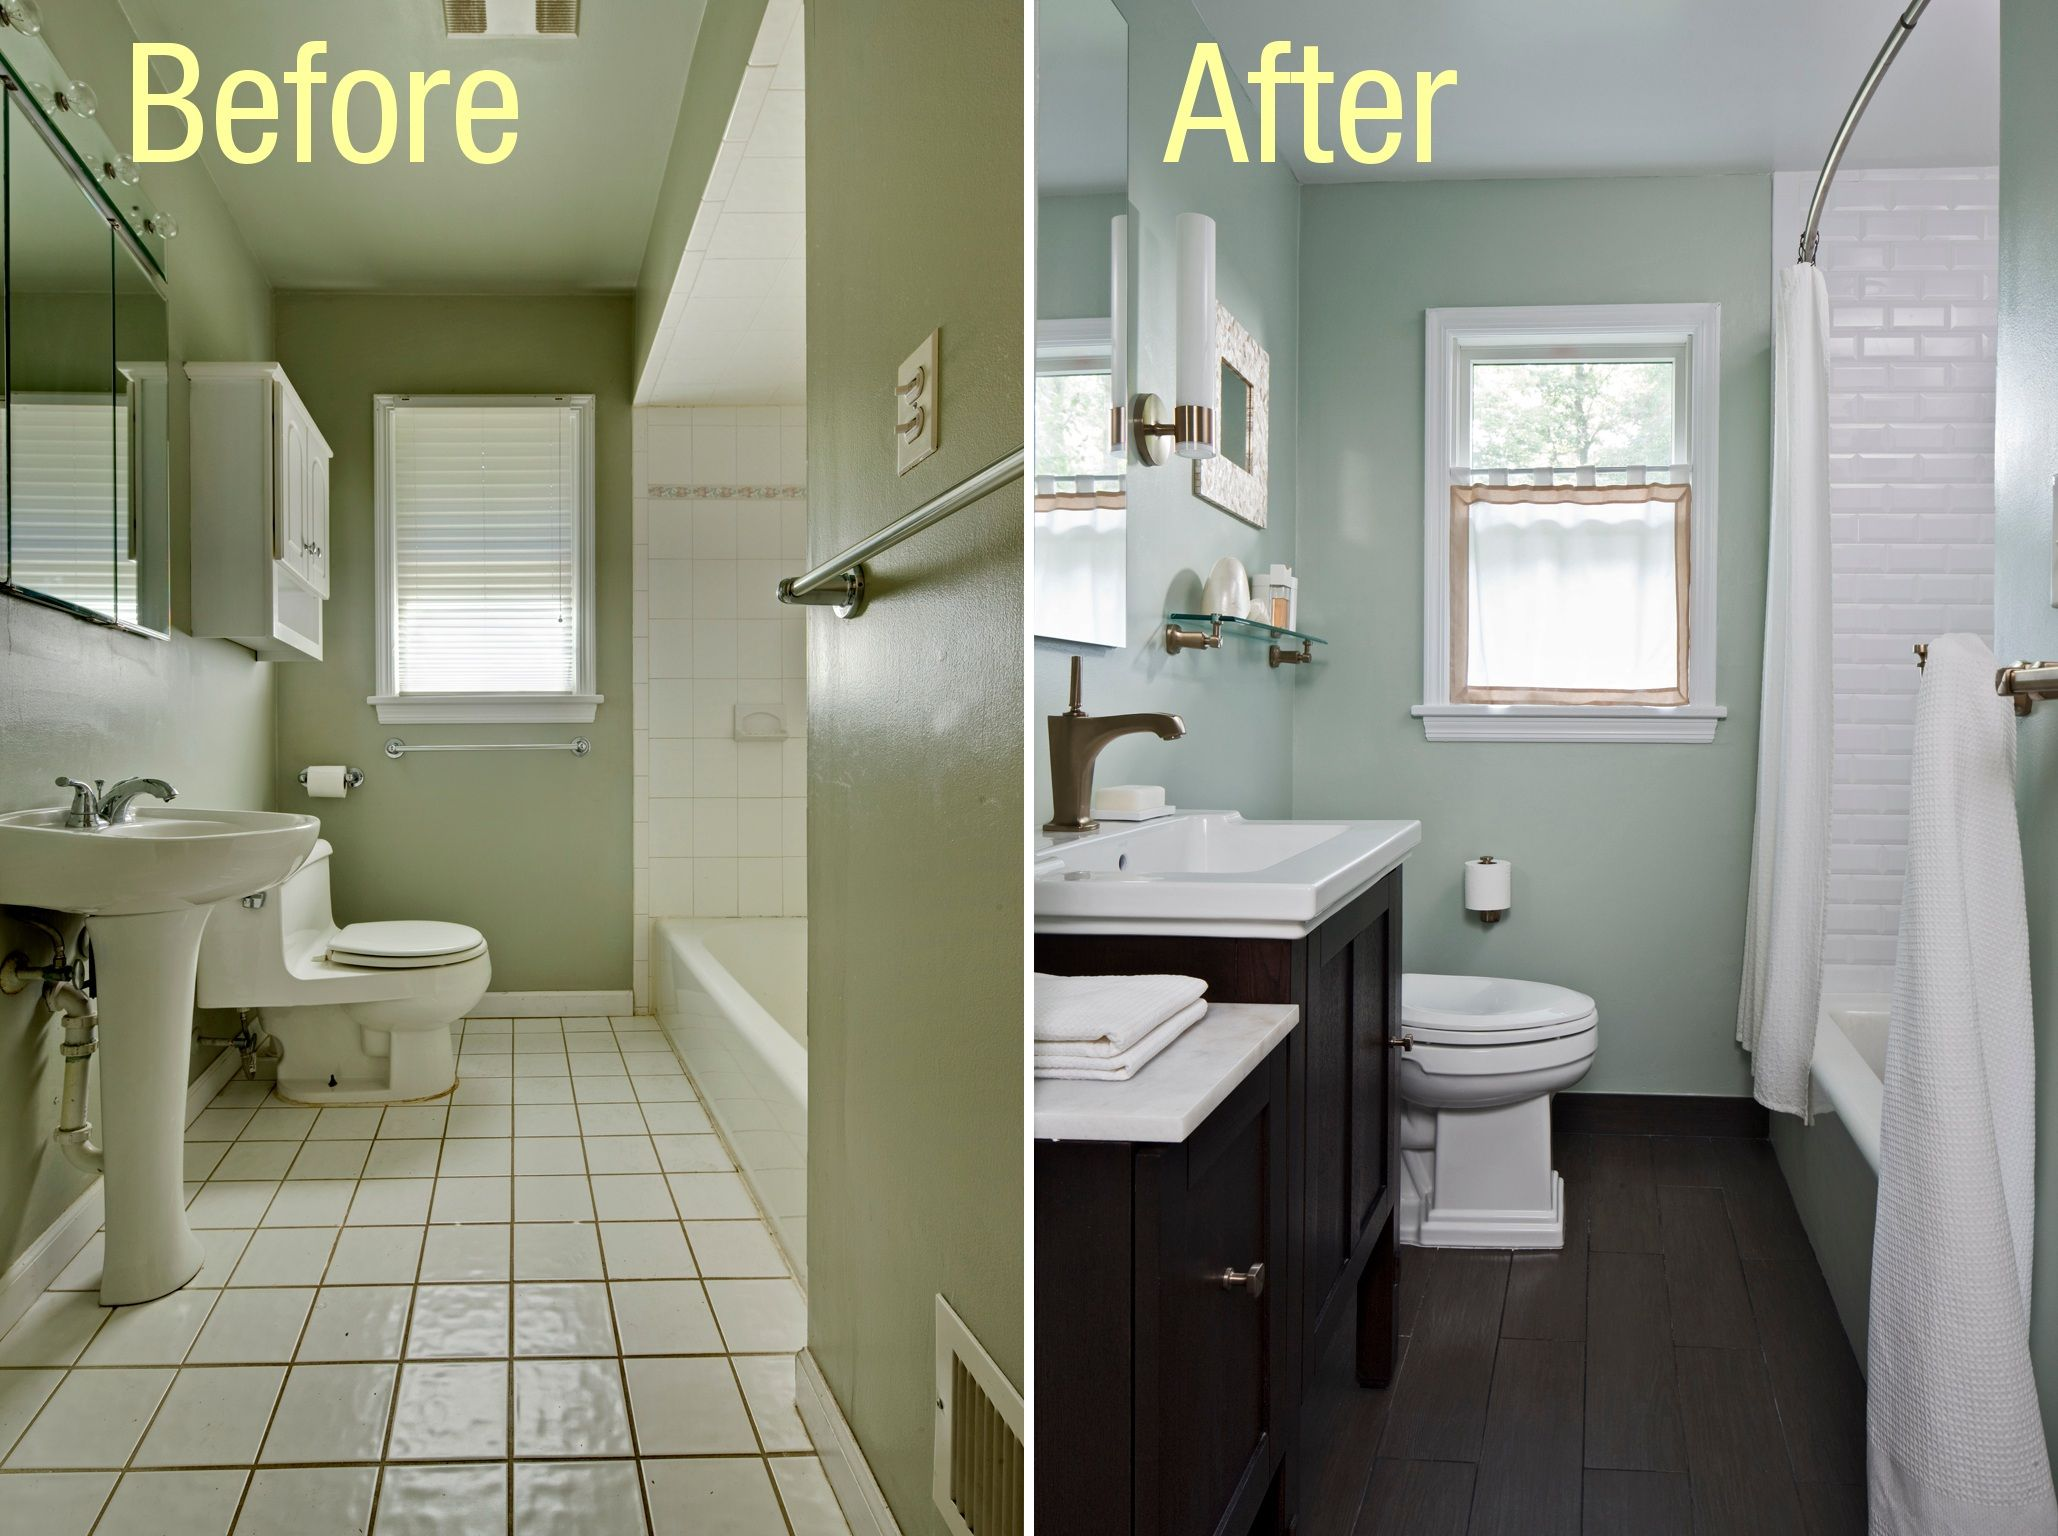 10 Bathroom Remodel Ideas Before And After 3 Removing Old Tiles